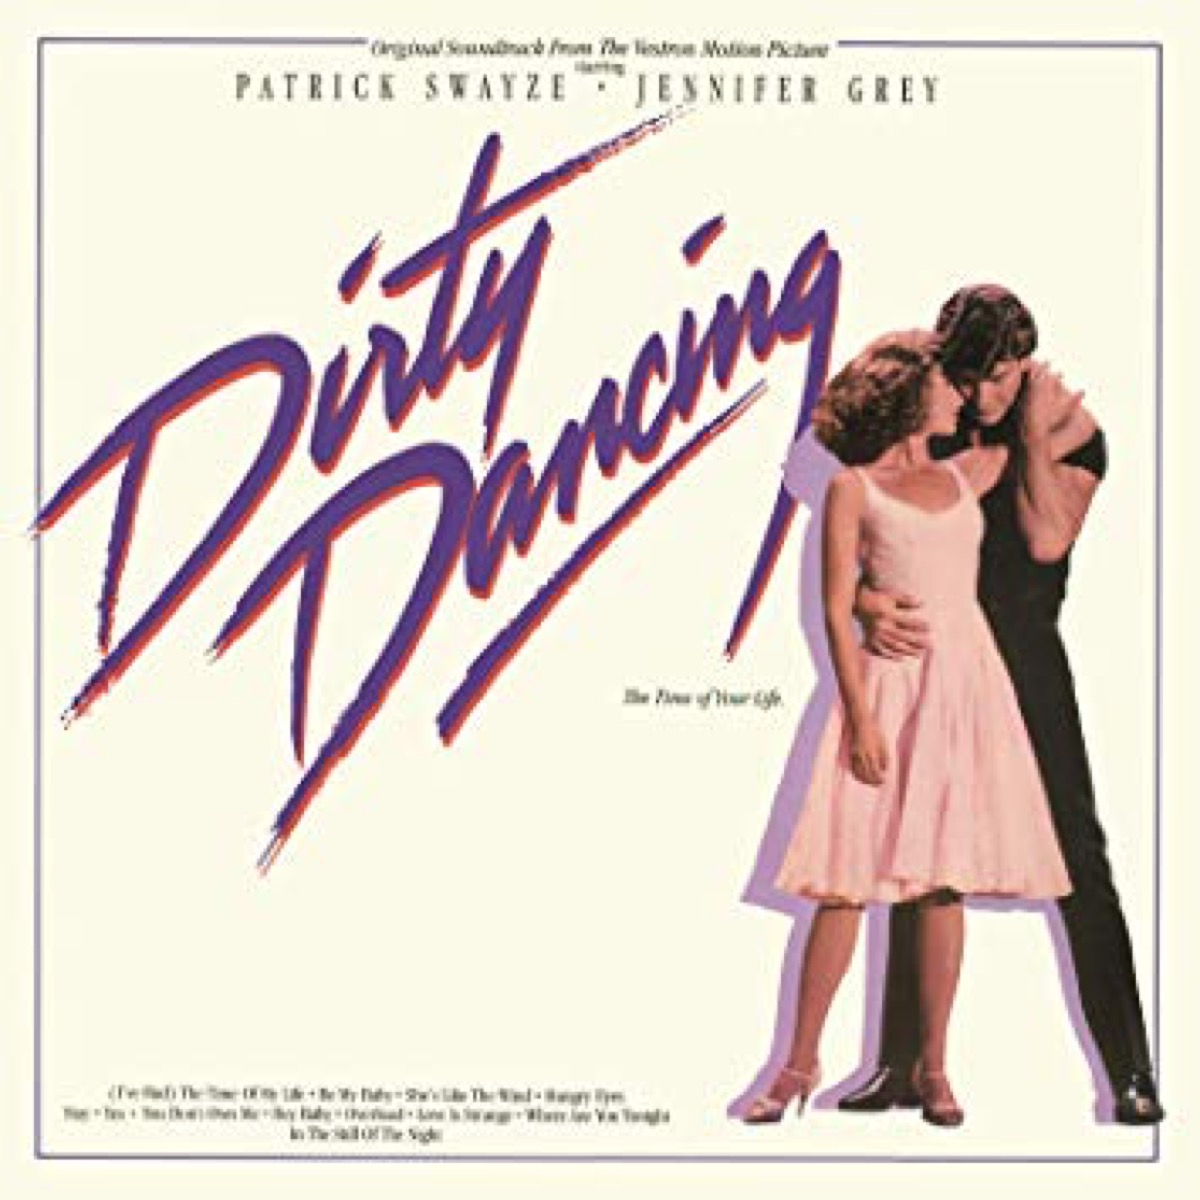 dirty dancing movie soundtrack album cover